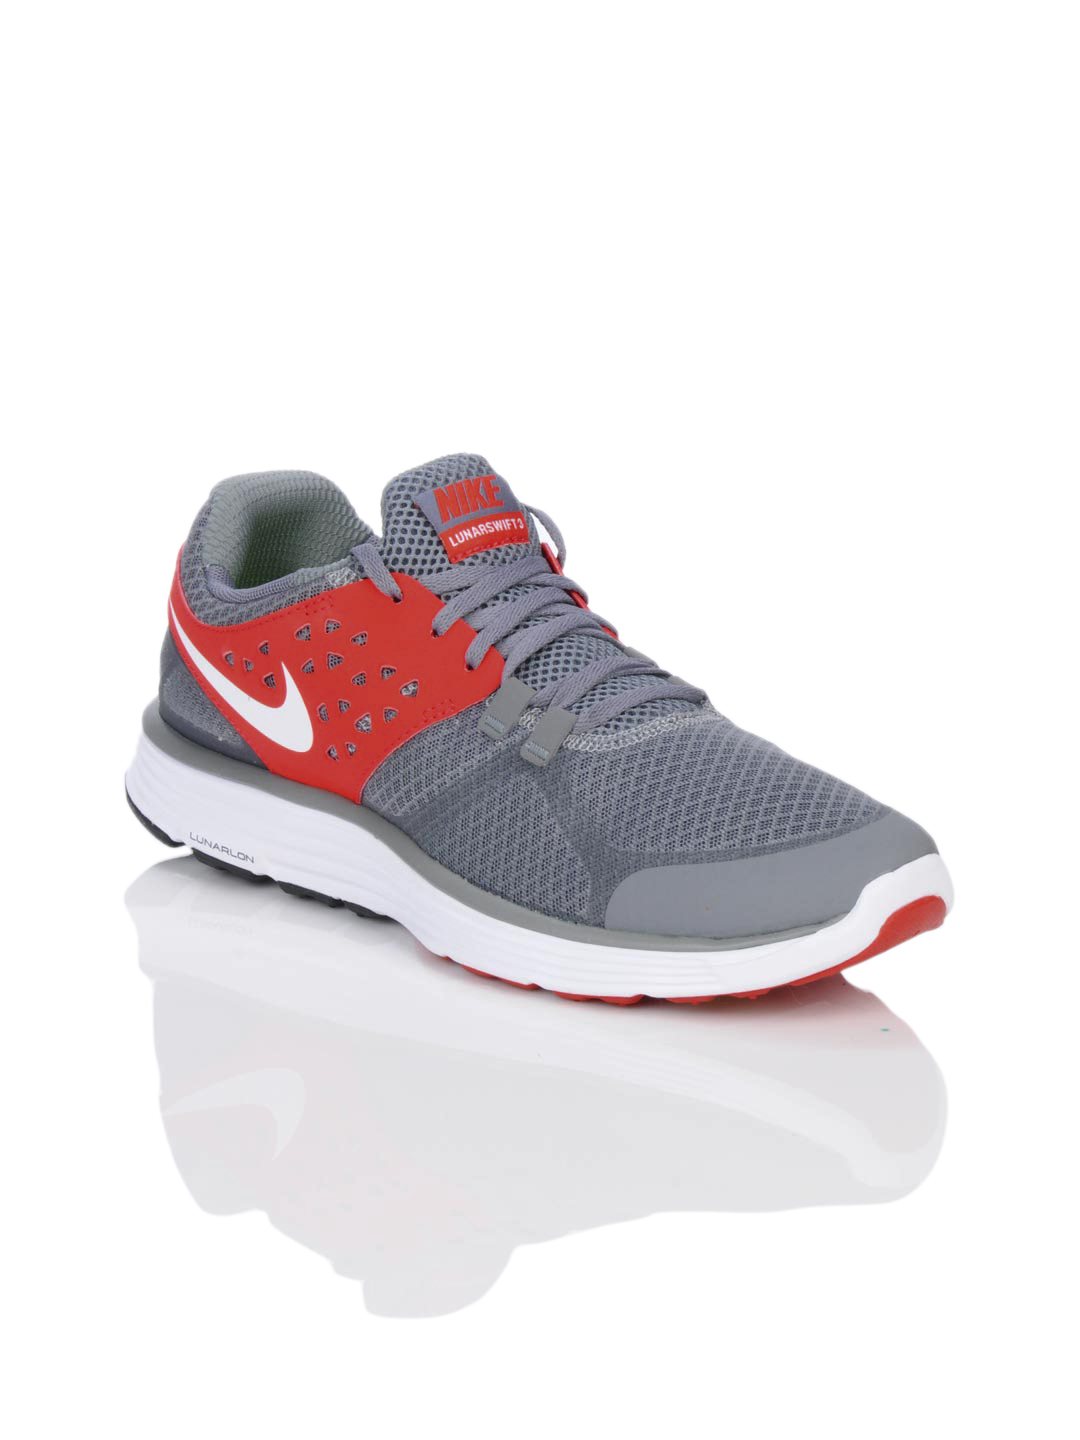 Nike Men Lunarswift +3 Grey Sports Shoes